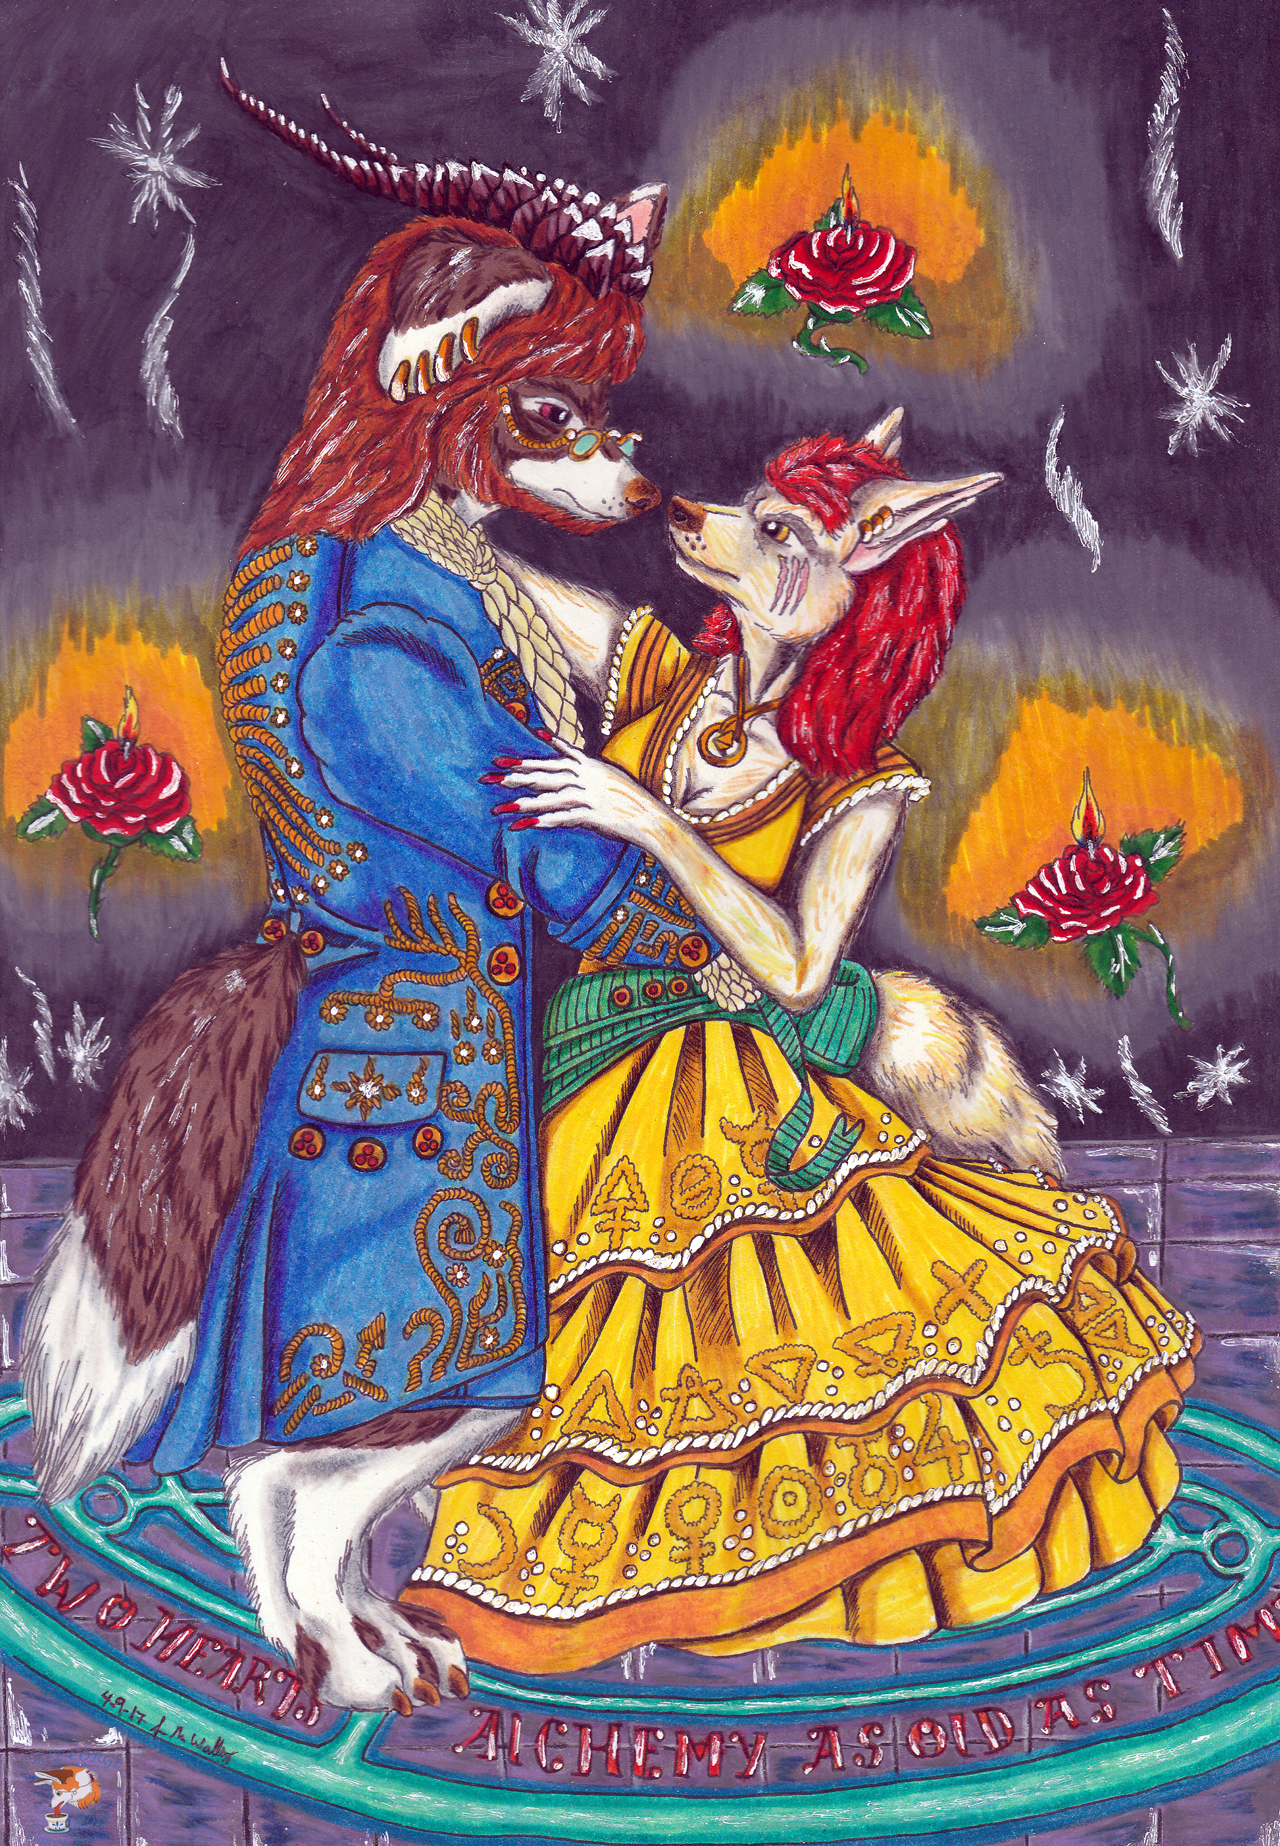 Alchemy As Old As Time - Beauty & The Beast Inspired